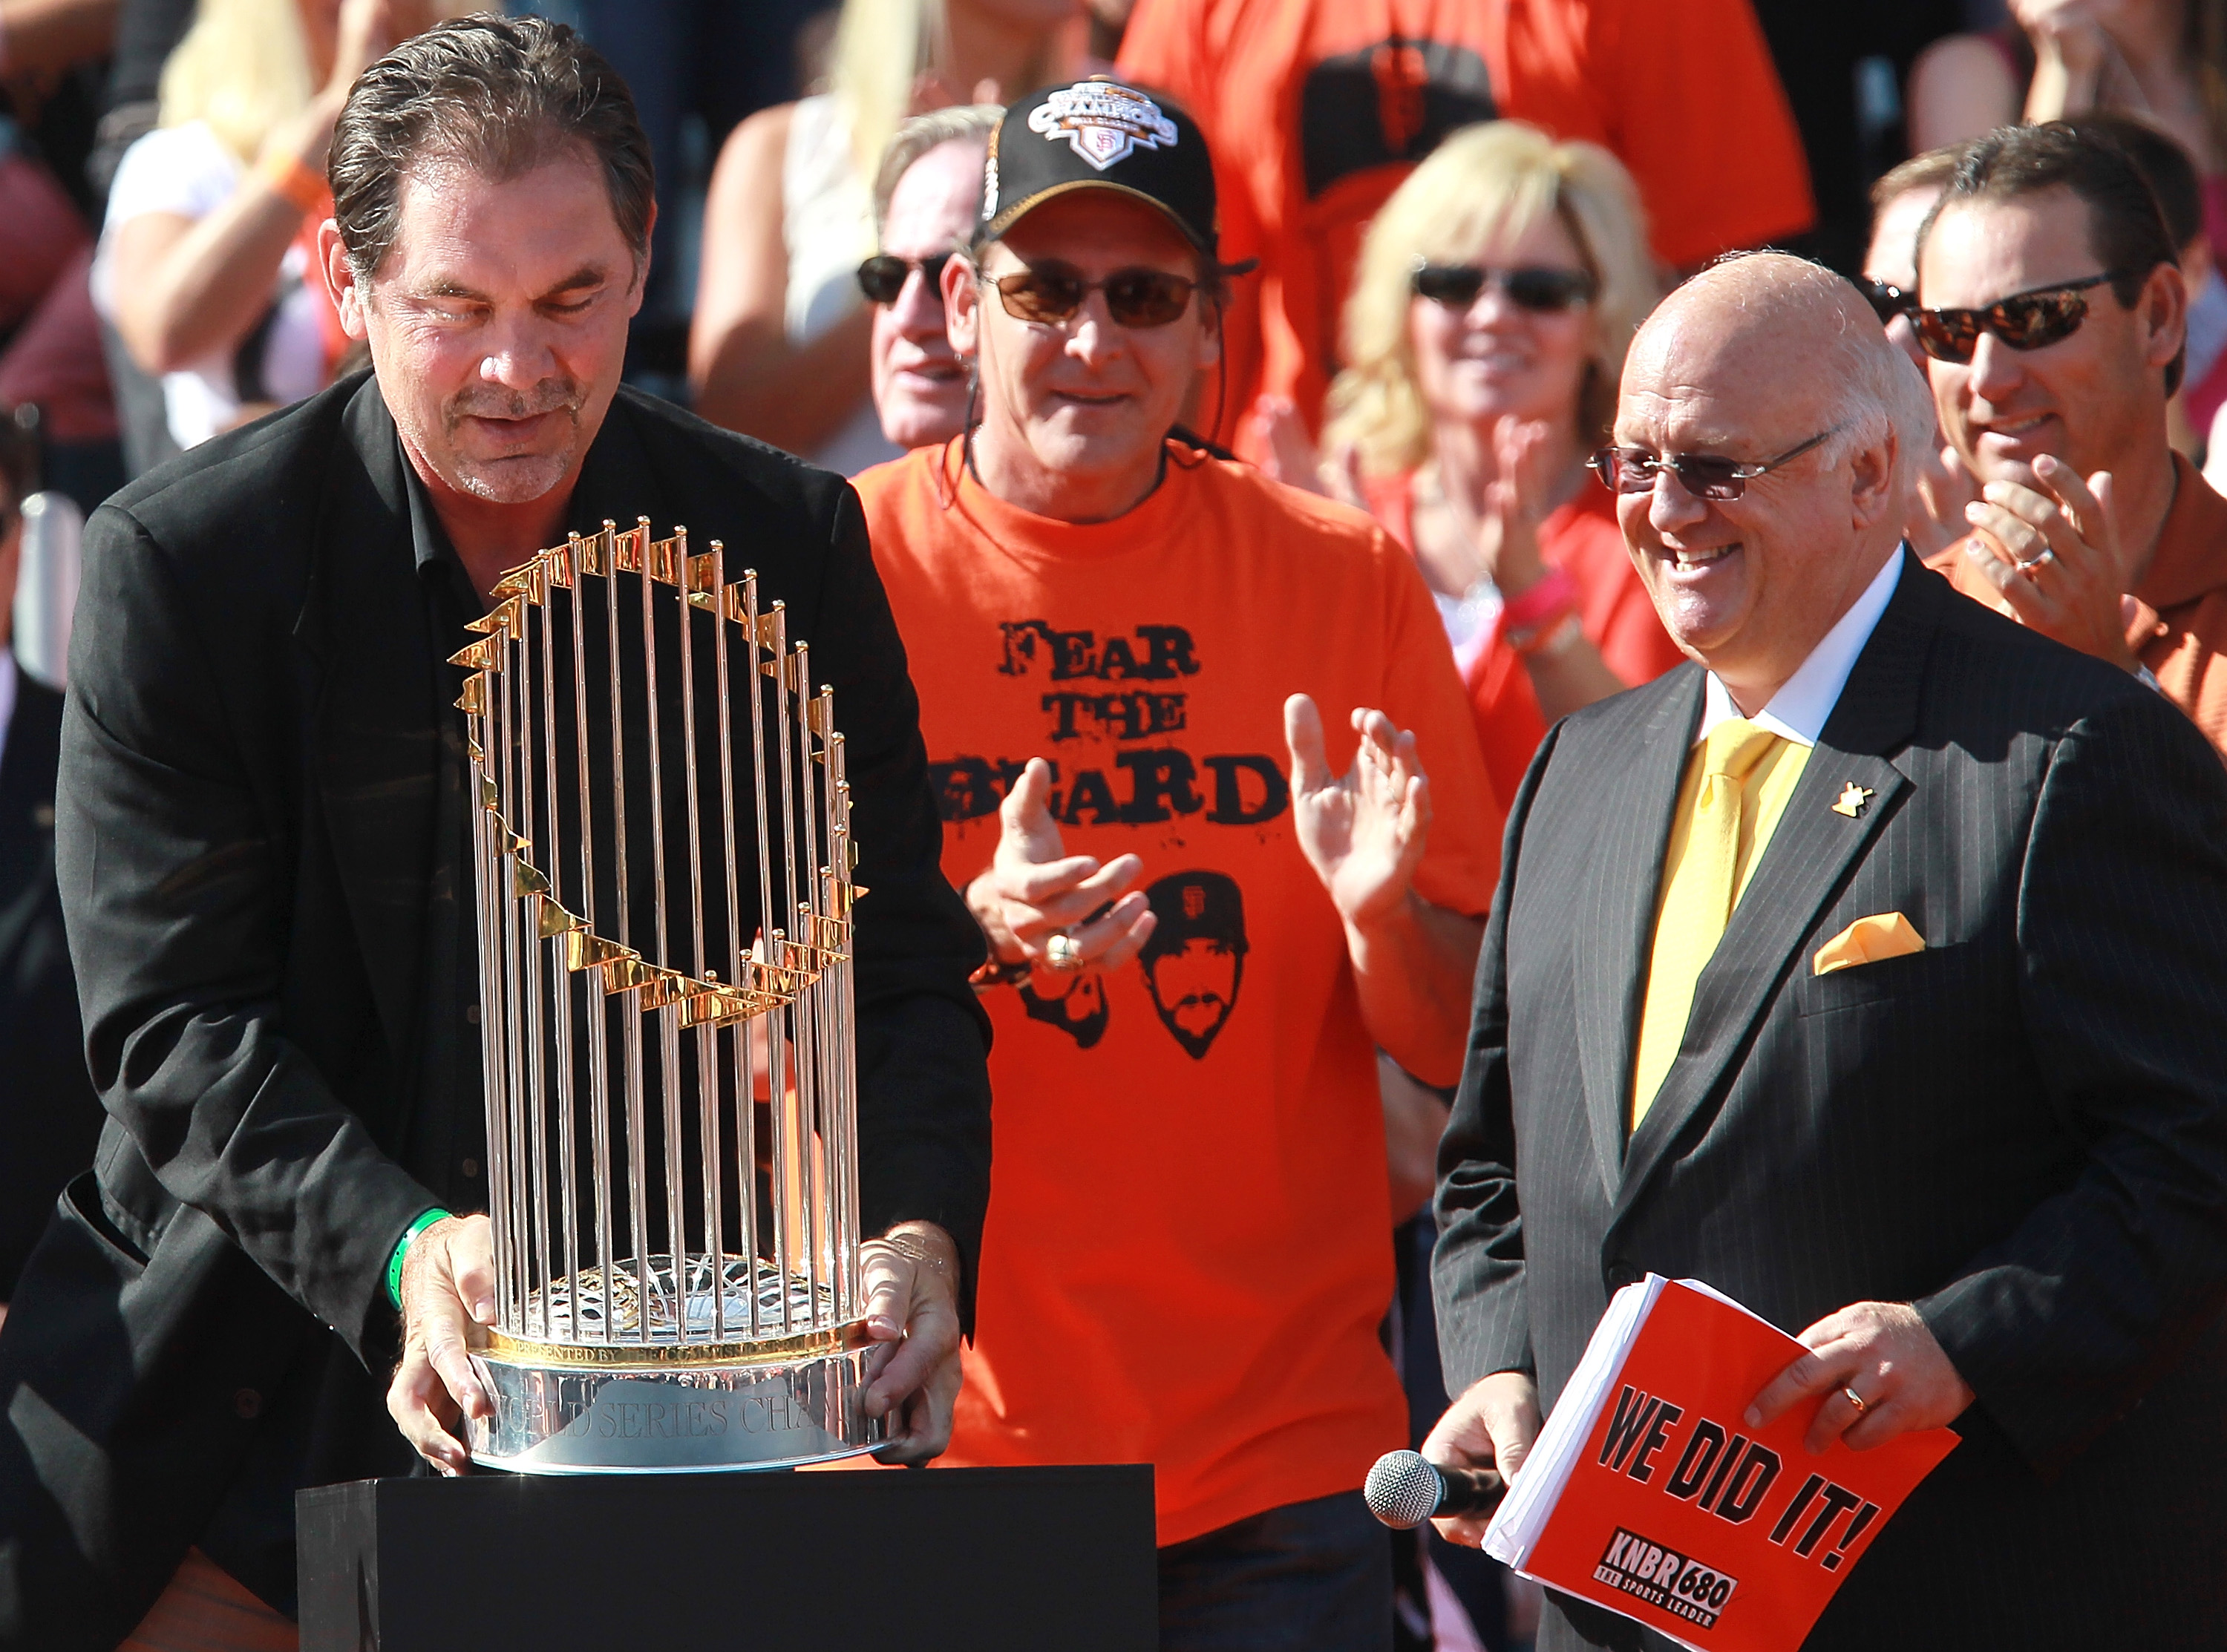 SAN FRANCISCO - NOVEMBER 03:  San Francisco Giants manager Bruce Bochy (L) carries the World Series trophy at the conclusion of the Giants' victory parade on November 3, 2010 in San Francisco, California. Thousands of Giants fans lined the streets of San